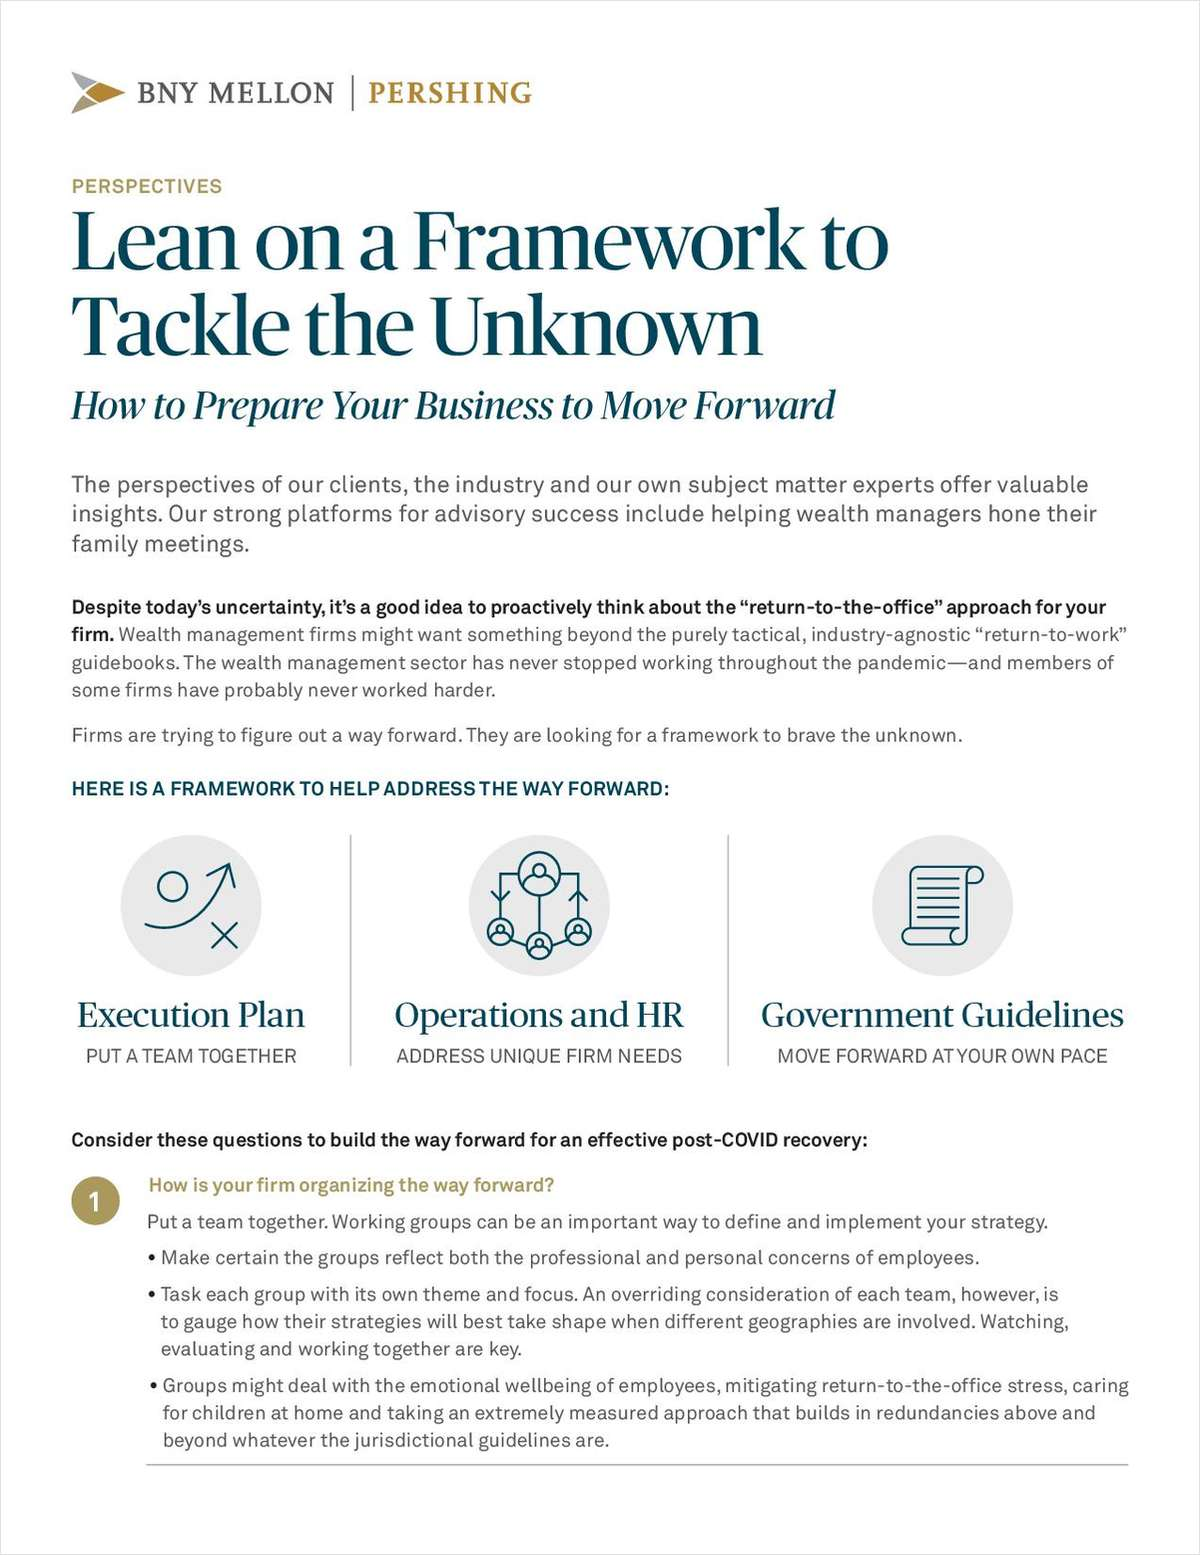 Lean on a Framework to Tackle the Unknown